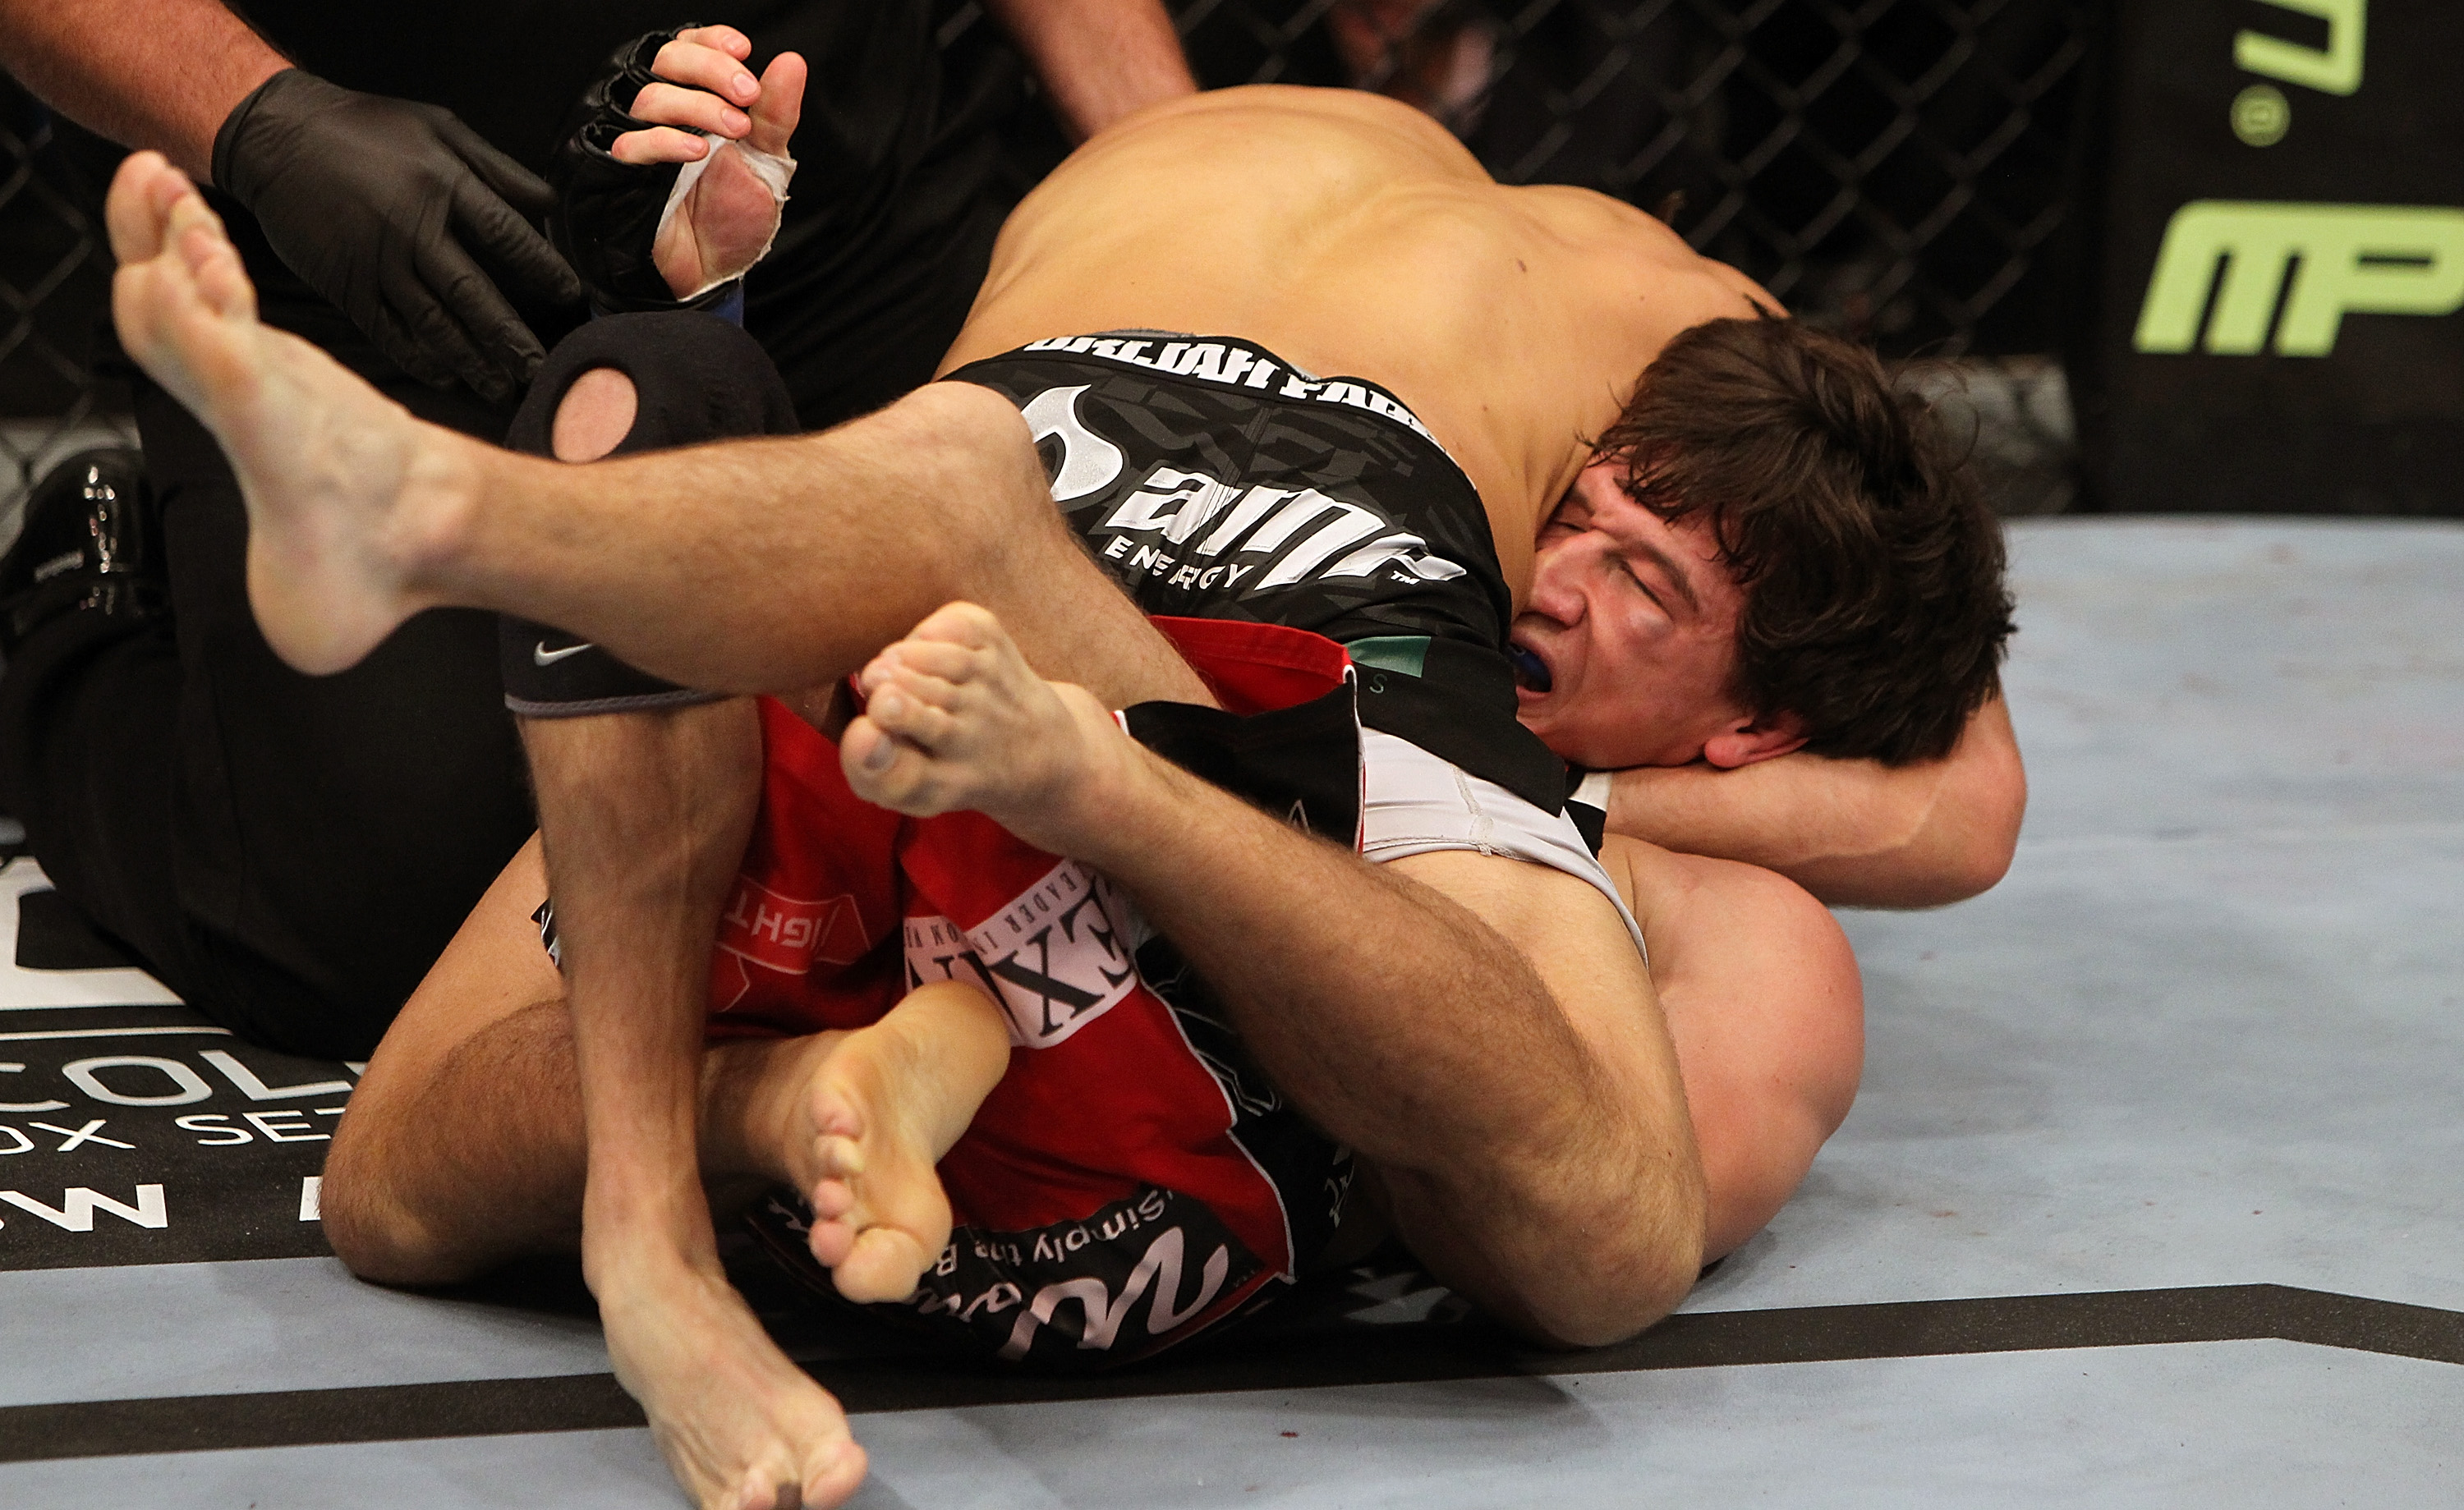 SAN JOSE, CA - NOVEMBER 19: Urijah Faber (top) holds Brian Bowles (bottom) in a head lock during an UFC Bantamweight bout at the HP Pavillion on November 19, 2011 in San Jose, California.  (Photo by Josh Hedges/Zuffa LLC/Zuffa LLC via Getty Images)